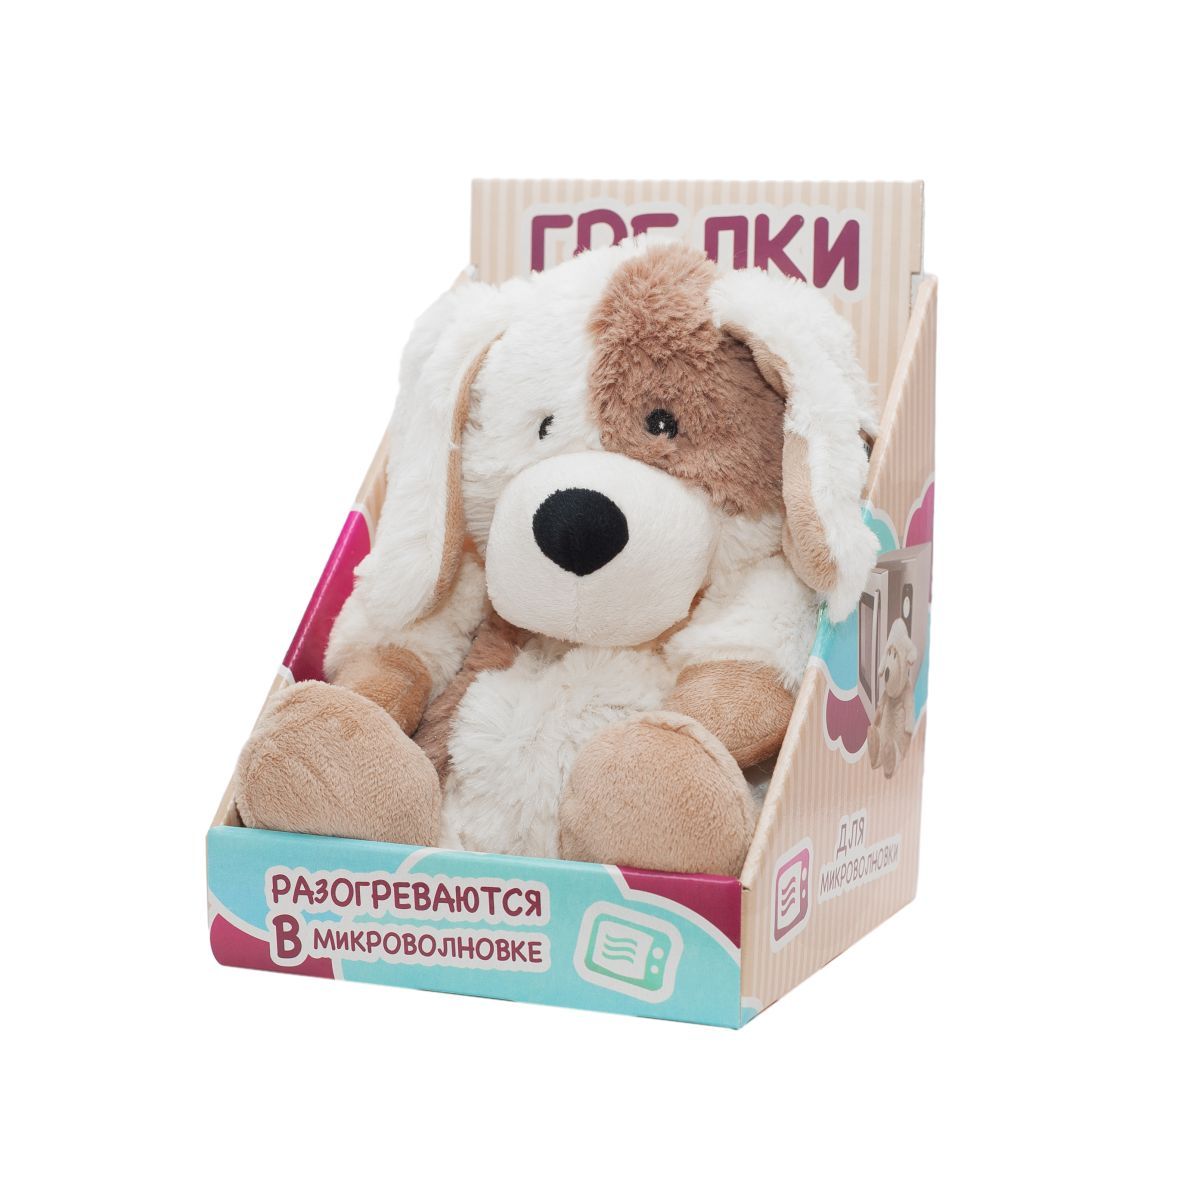 Пинкл (Pinkl) | Игрушка-грелка Песик | Cozy Plush Microwaveable Soft Toy New Puppy Intelex